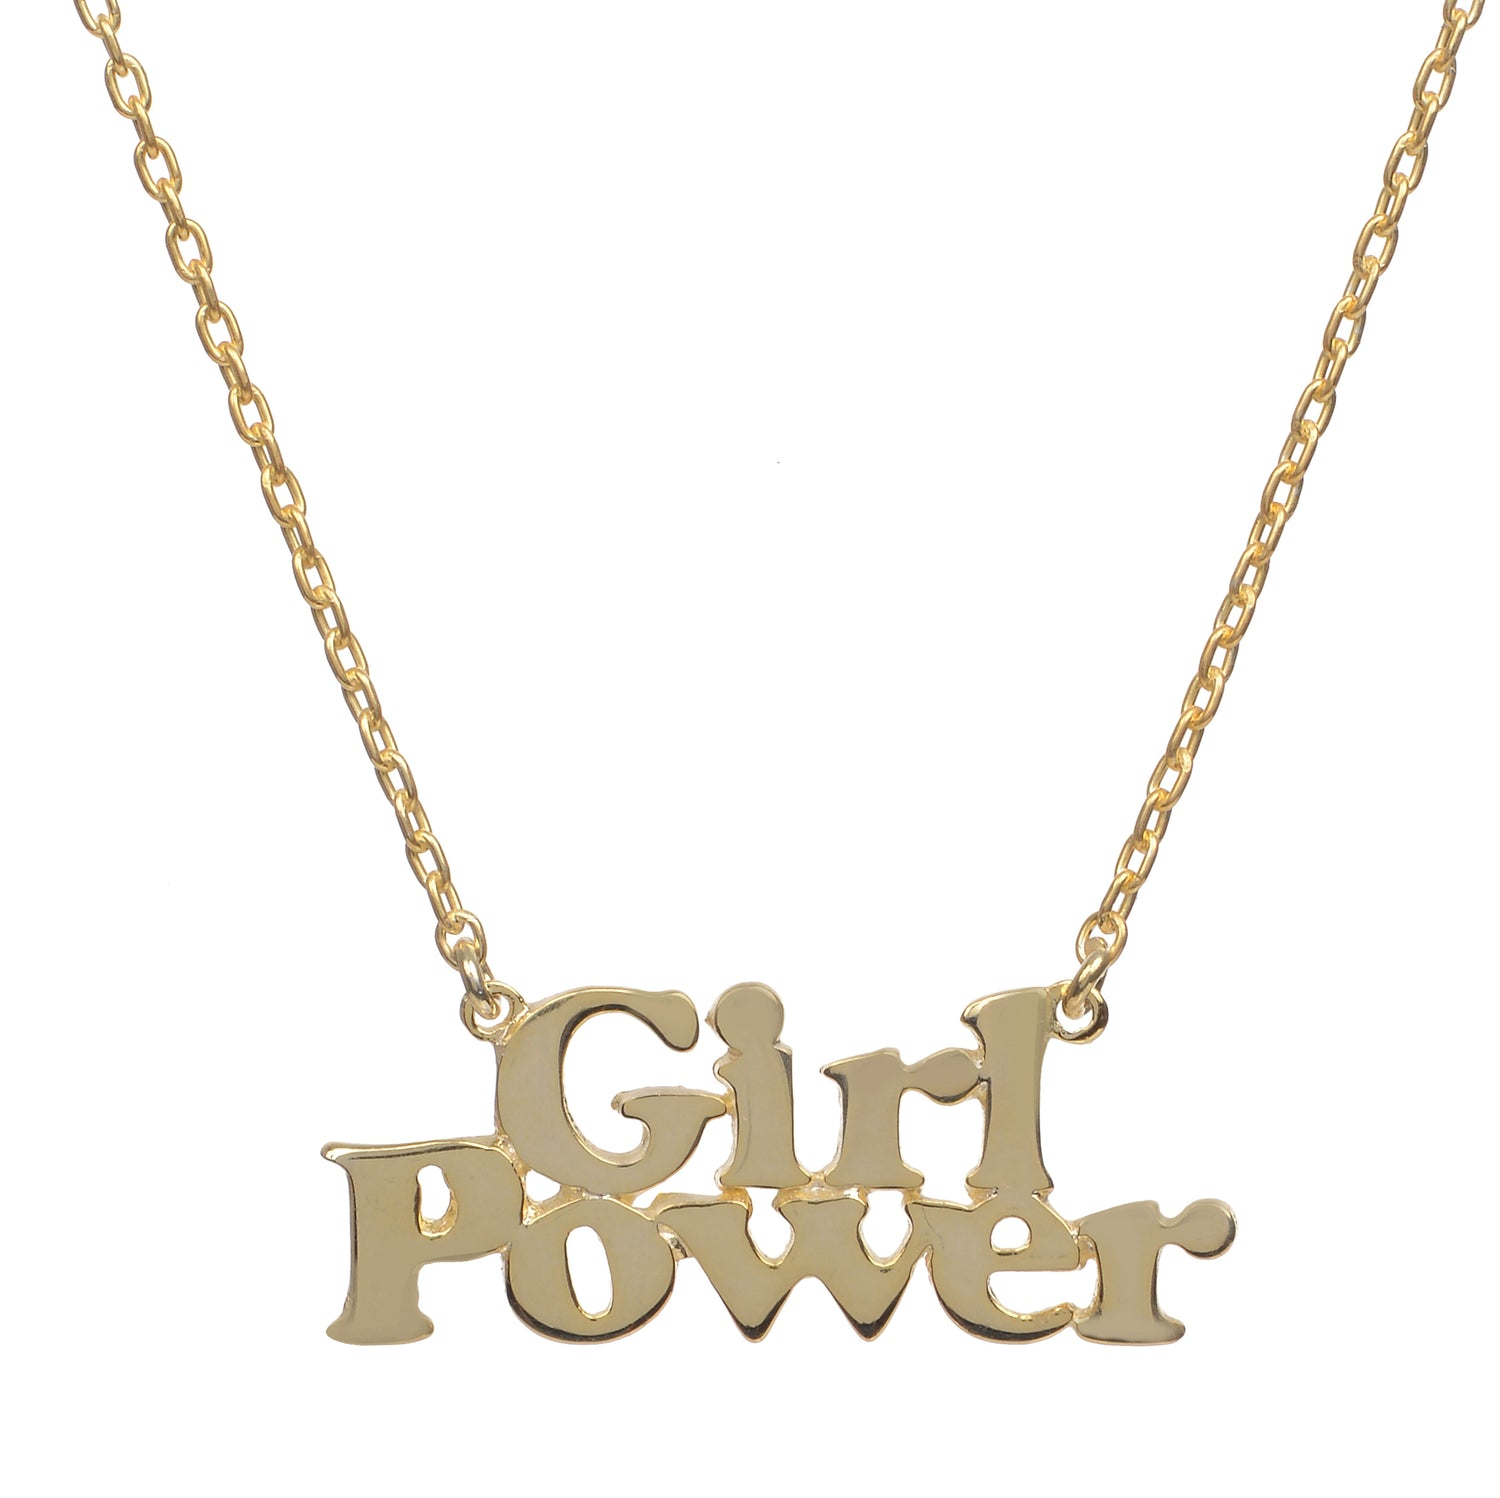 Girl Power Necklace - Bing Bang Jewelry NYC